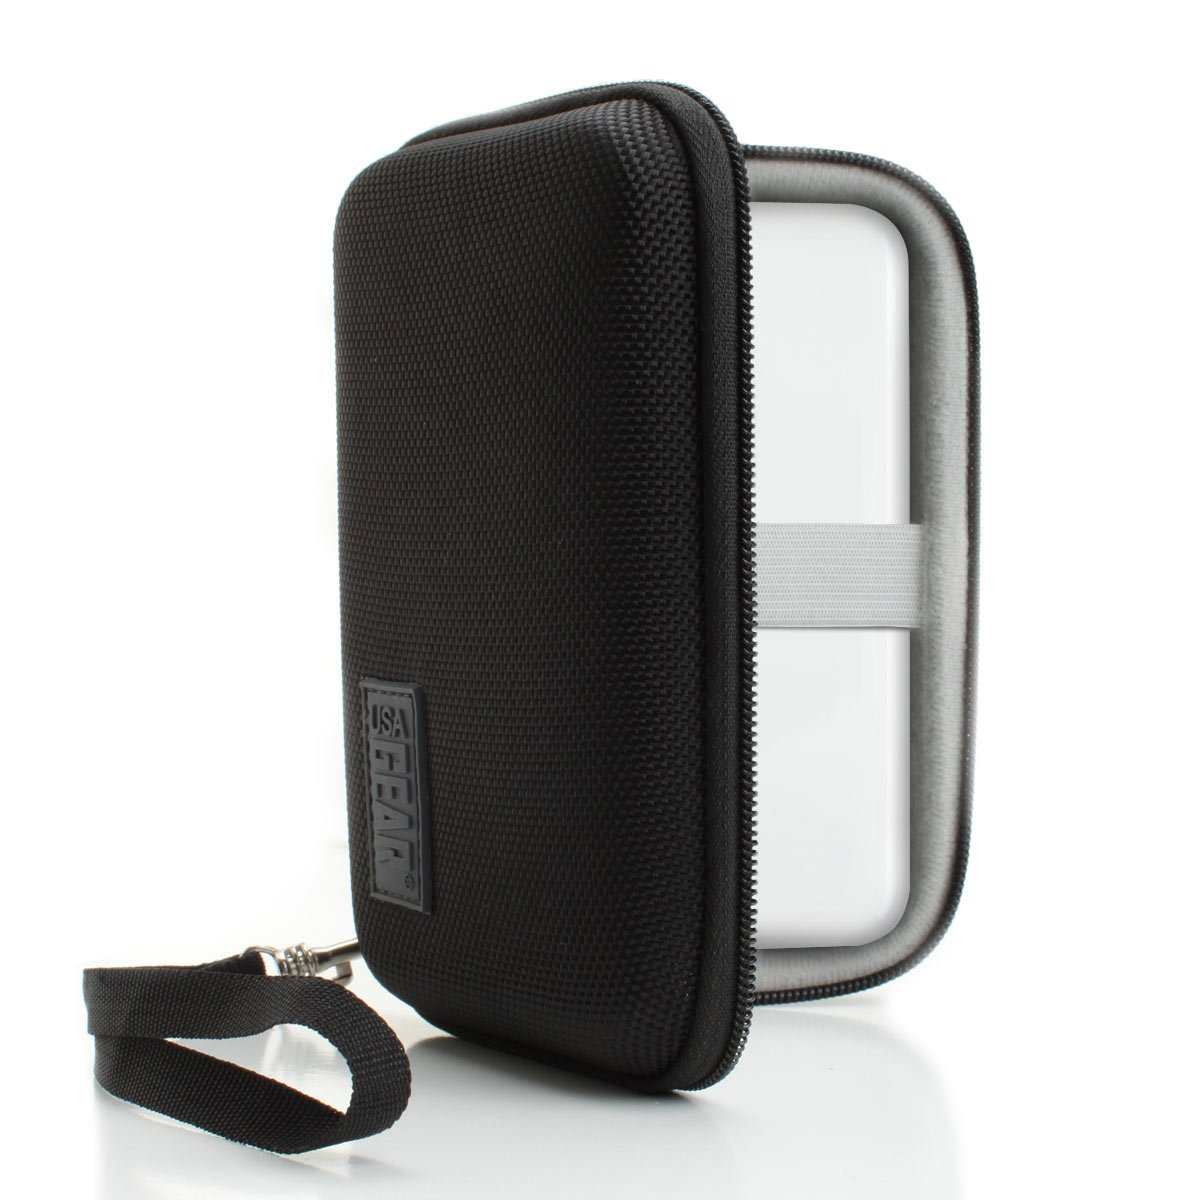 USA Gear Portable Photo Printer Carrying Case Travel Bag with Hard Shell Design and Wrist Strap for Polaroid Zip Mobile Printer, LG PD241T and More Pocket Photo Printers